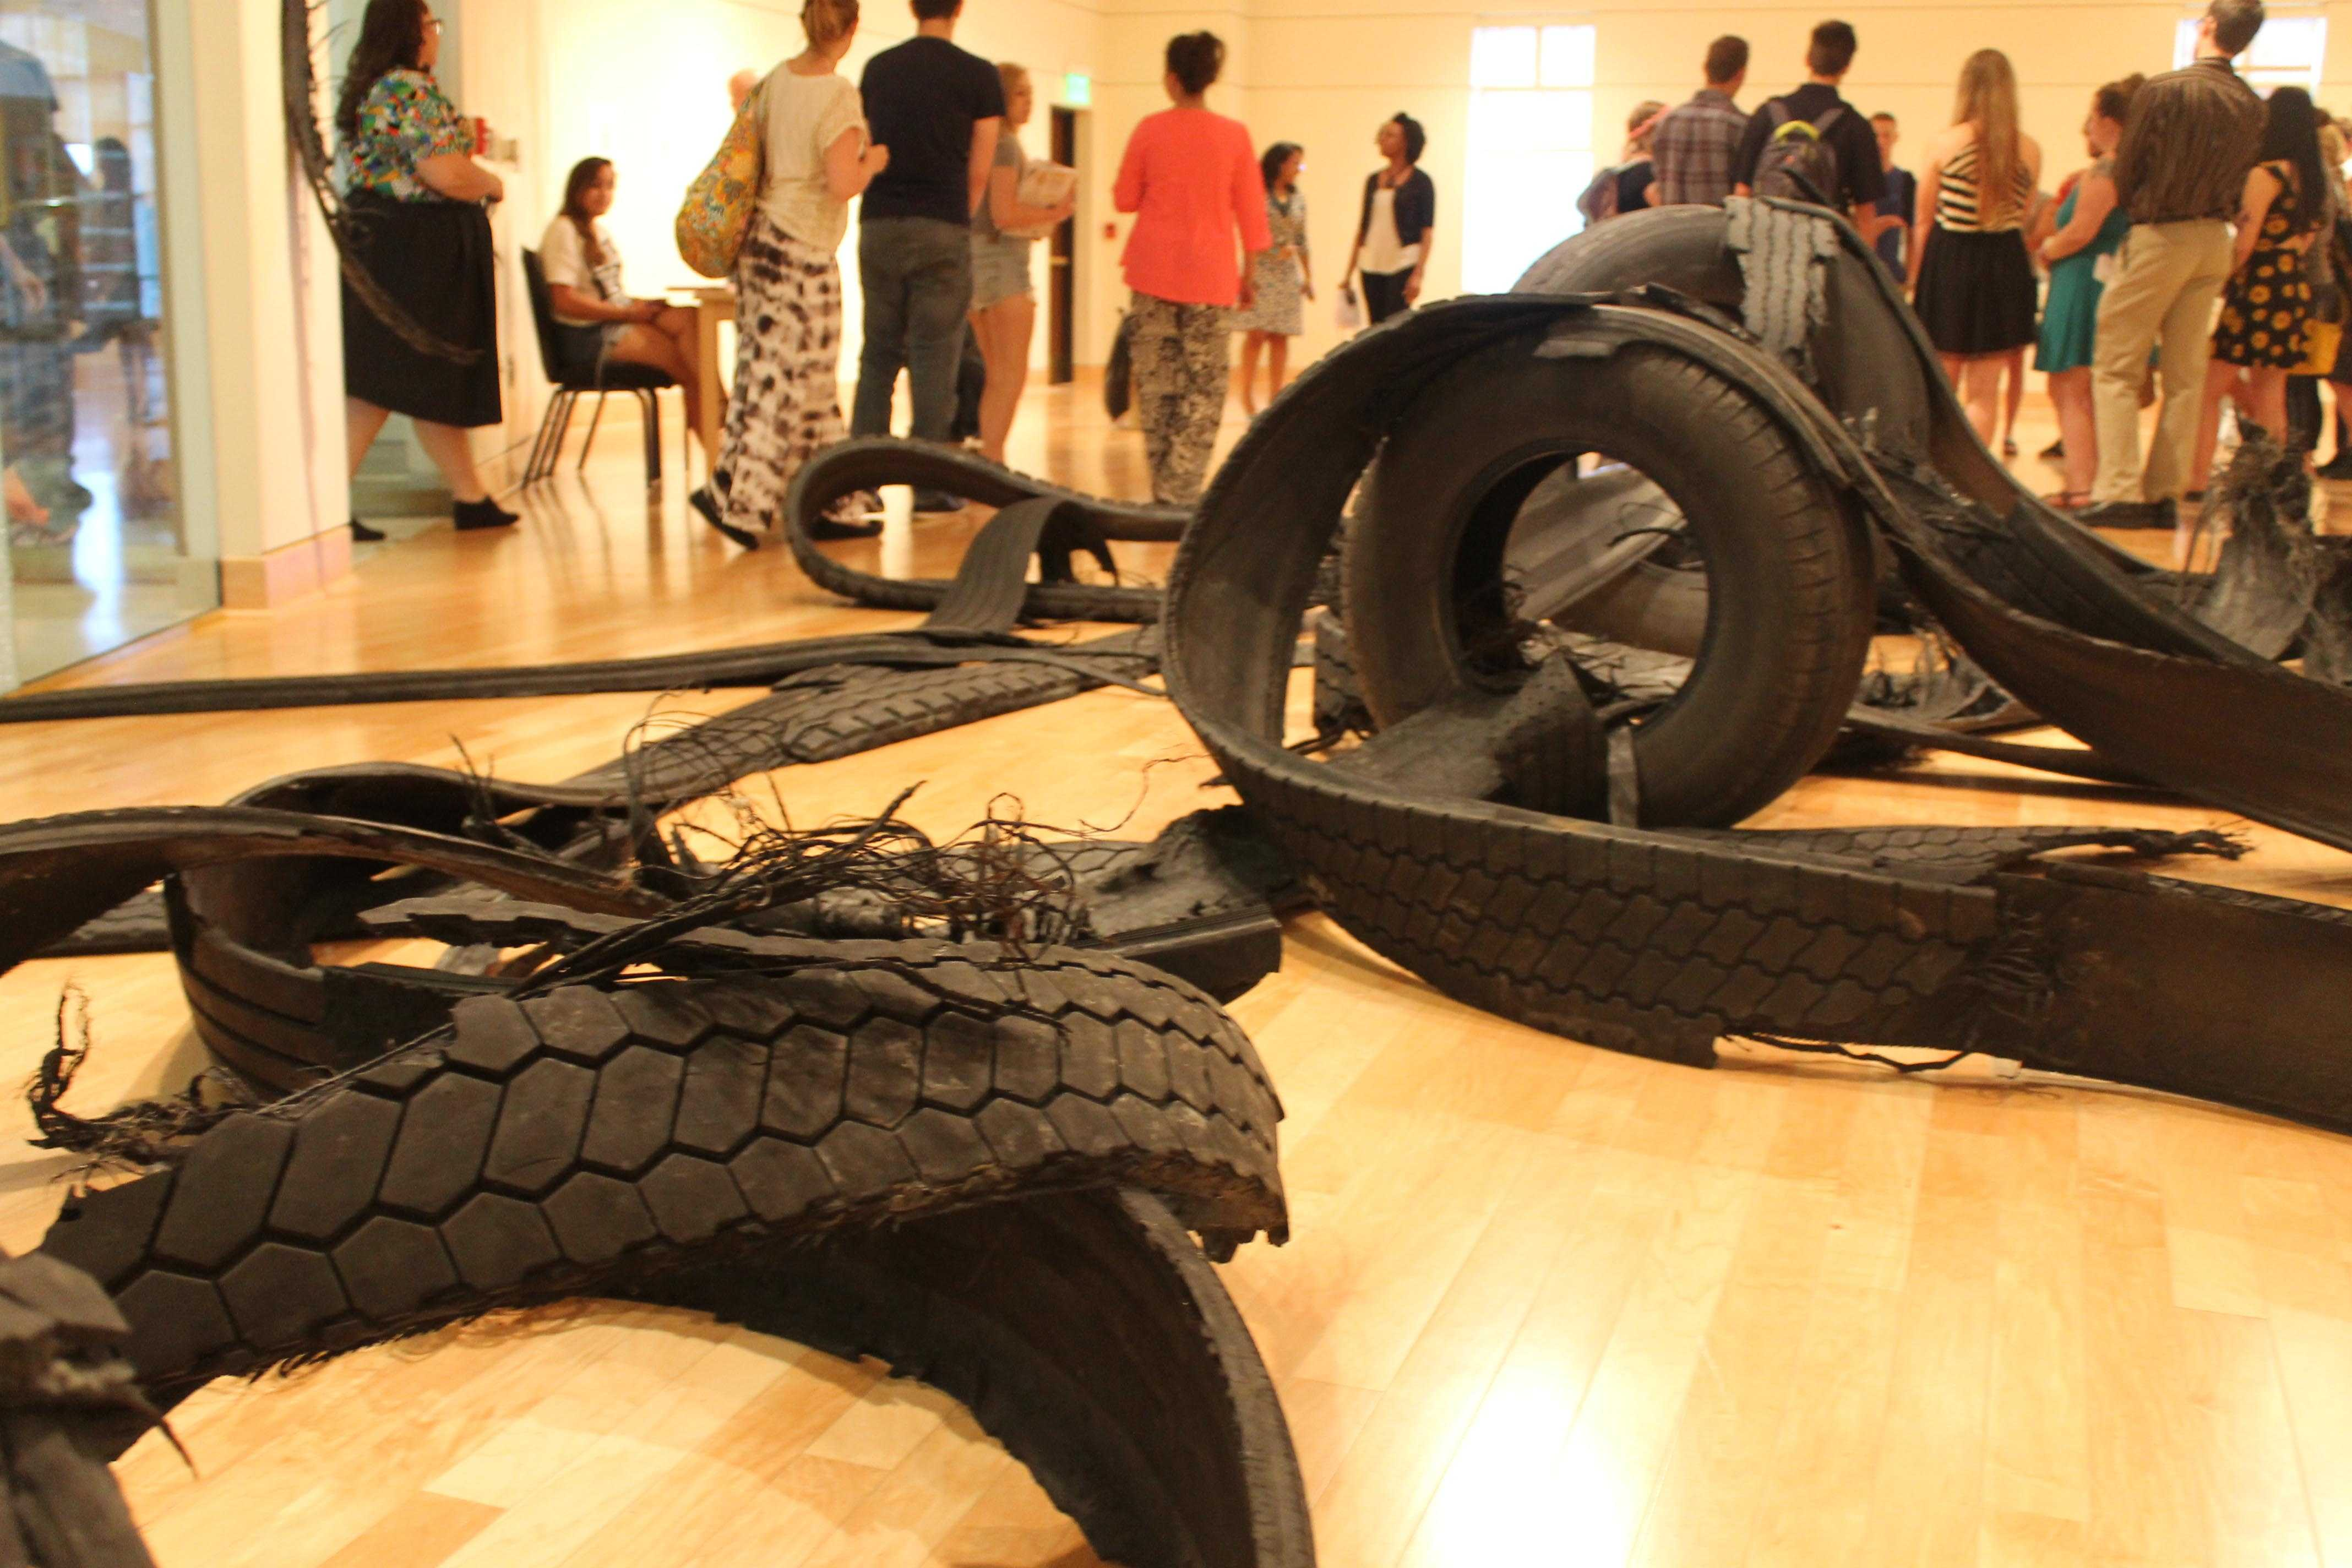 Rubber tires were used to construct this exhibition